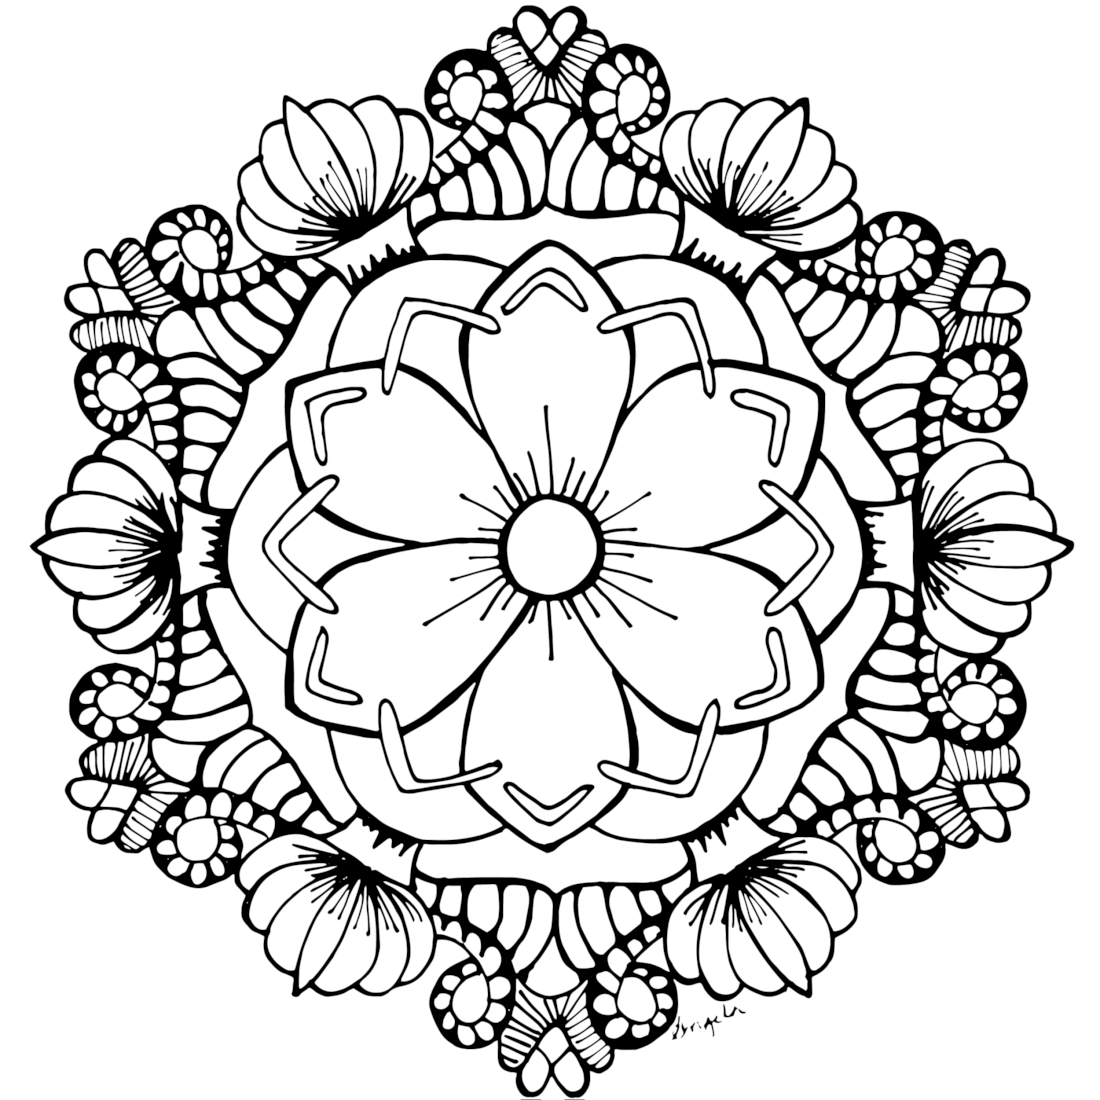 Free Adult Coloring Pages 35 Gorgeous Printable To Rhtealnotes: Coloring Pages For Adults Floral At Baymontmadison.com